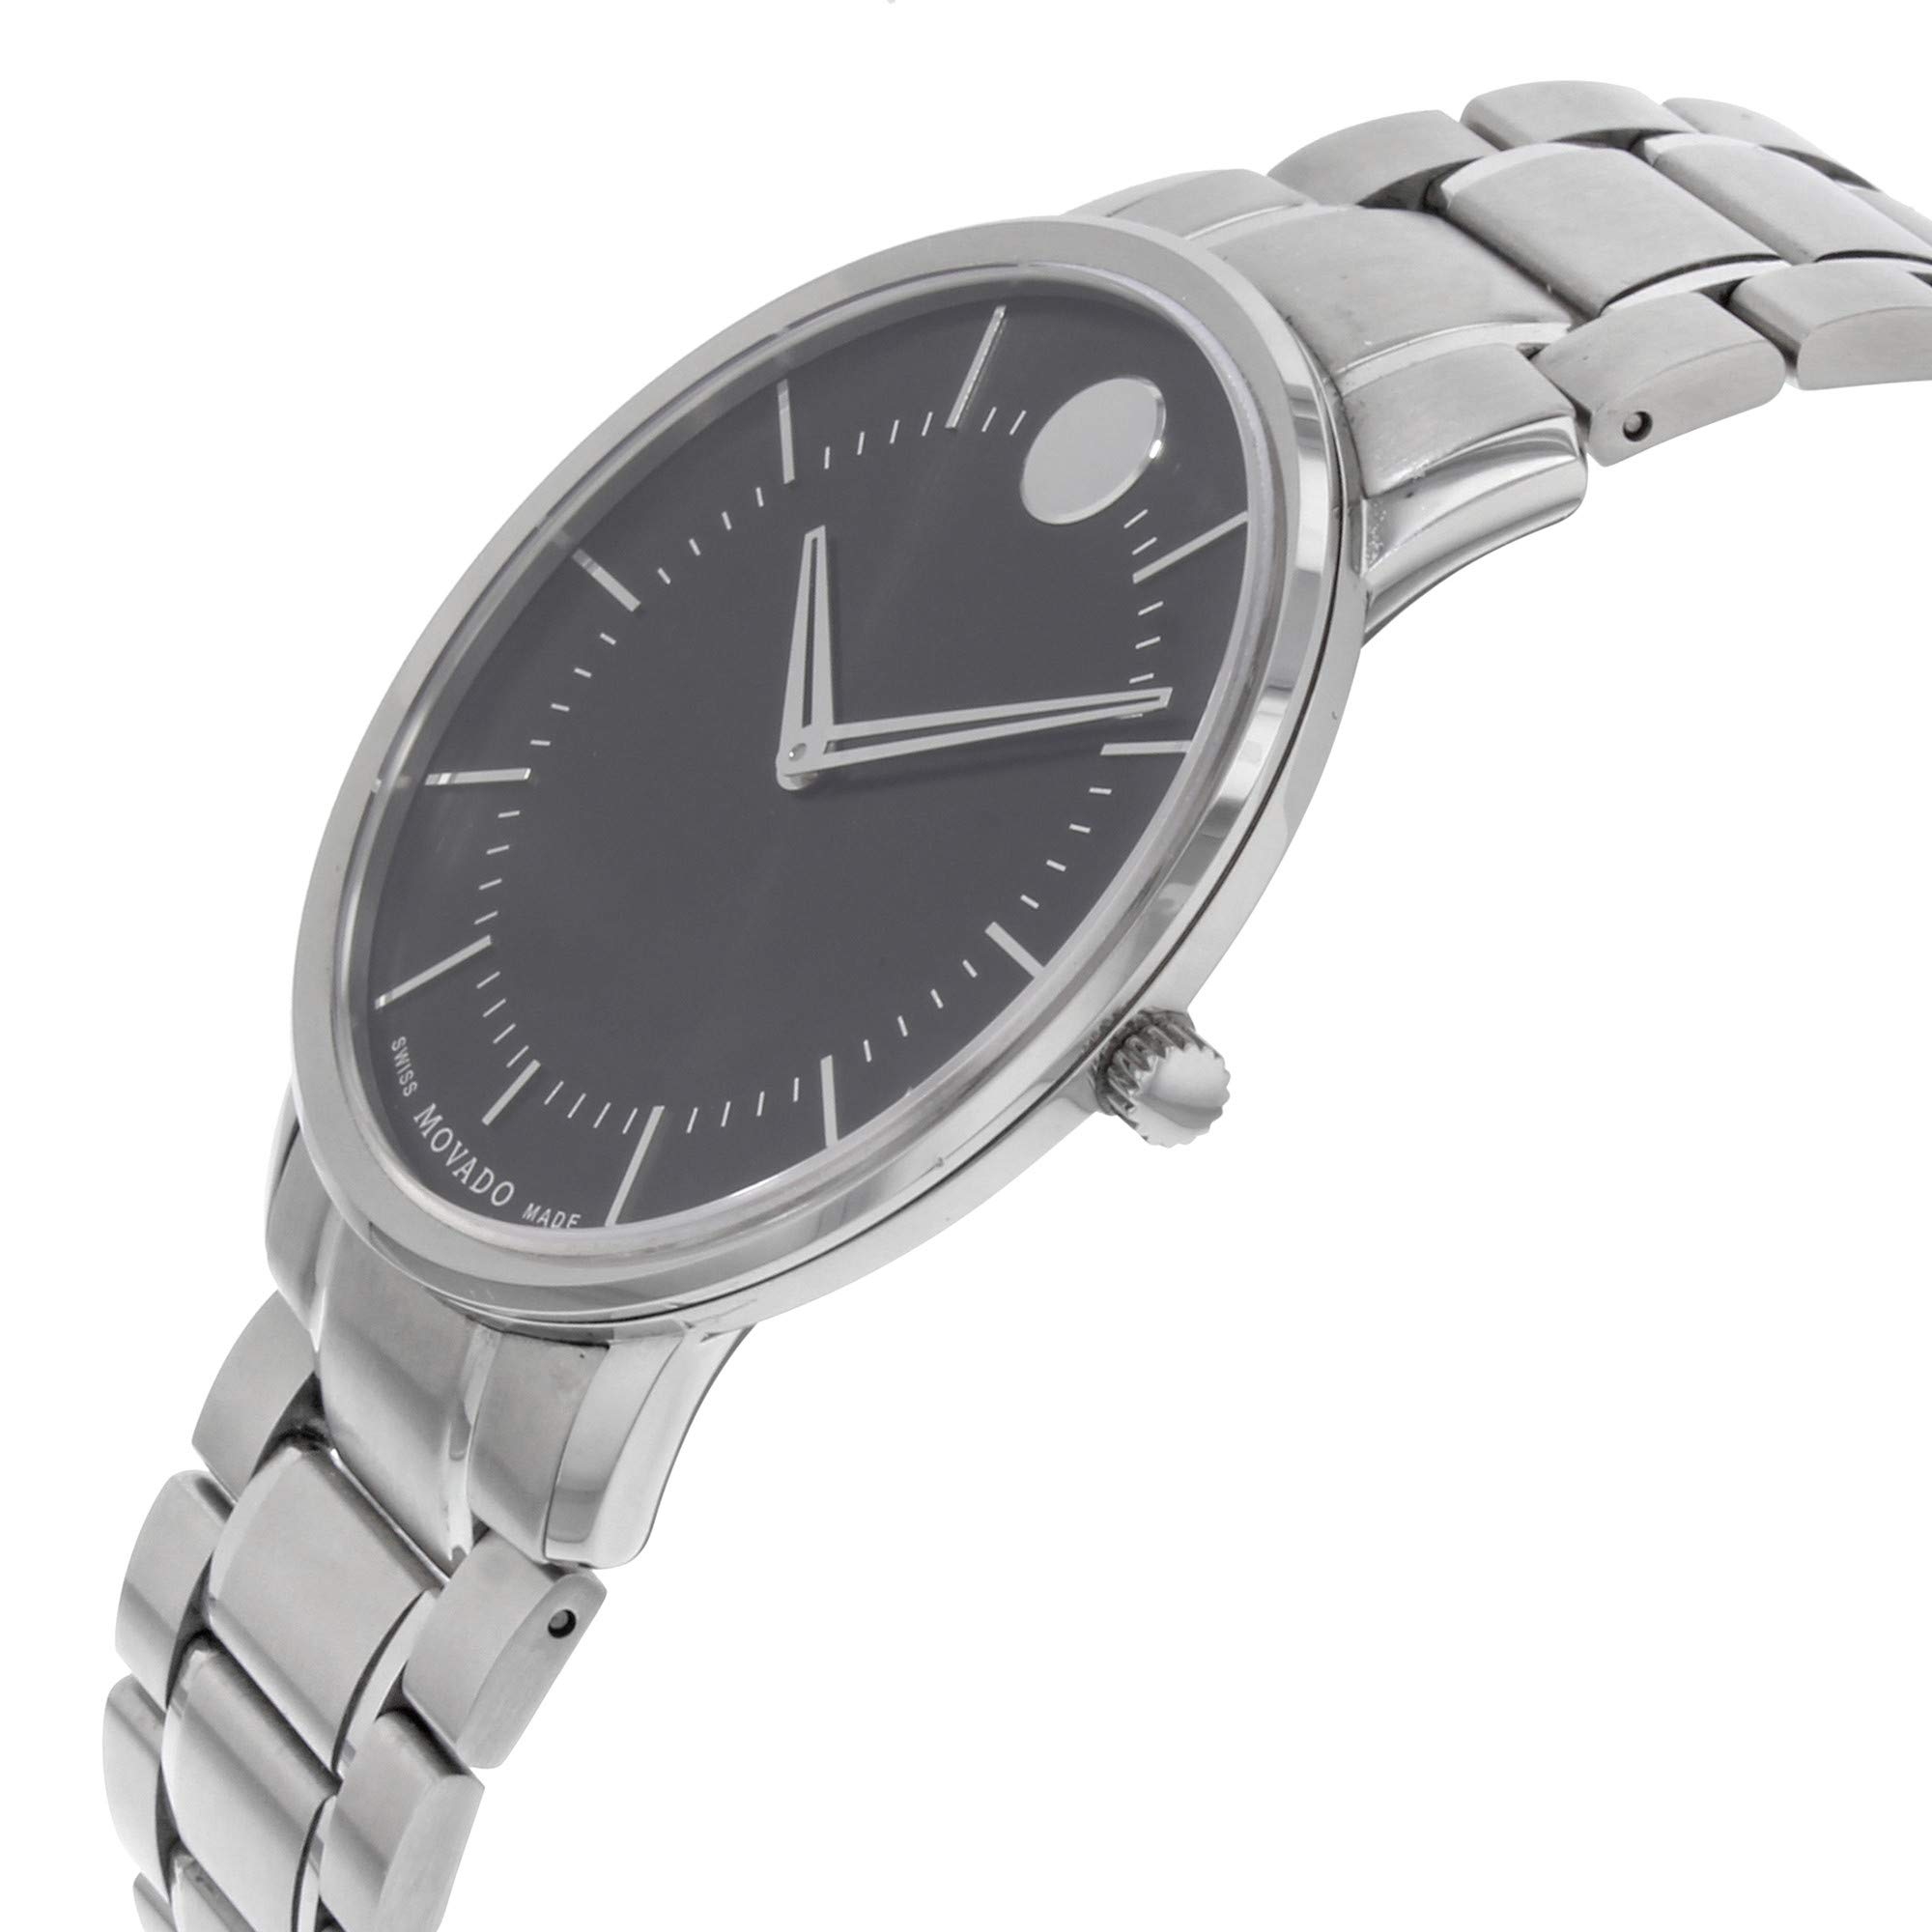 Movado Classic Quartz Male Watch 0606687 (Certified Pre-Owned) by Movado (Image #3)